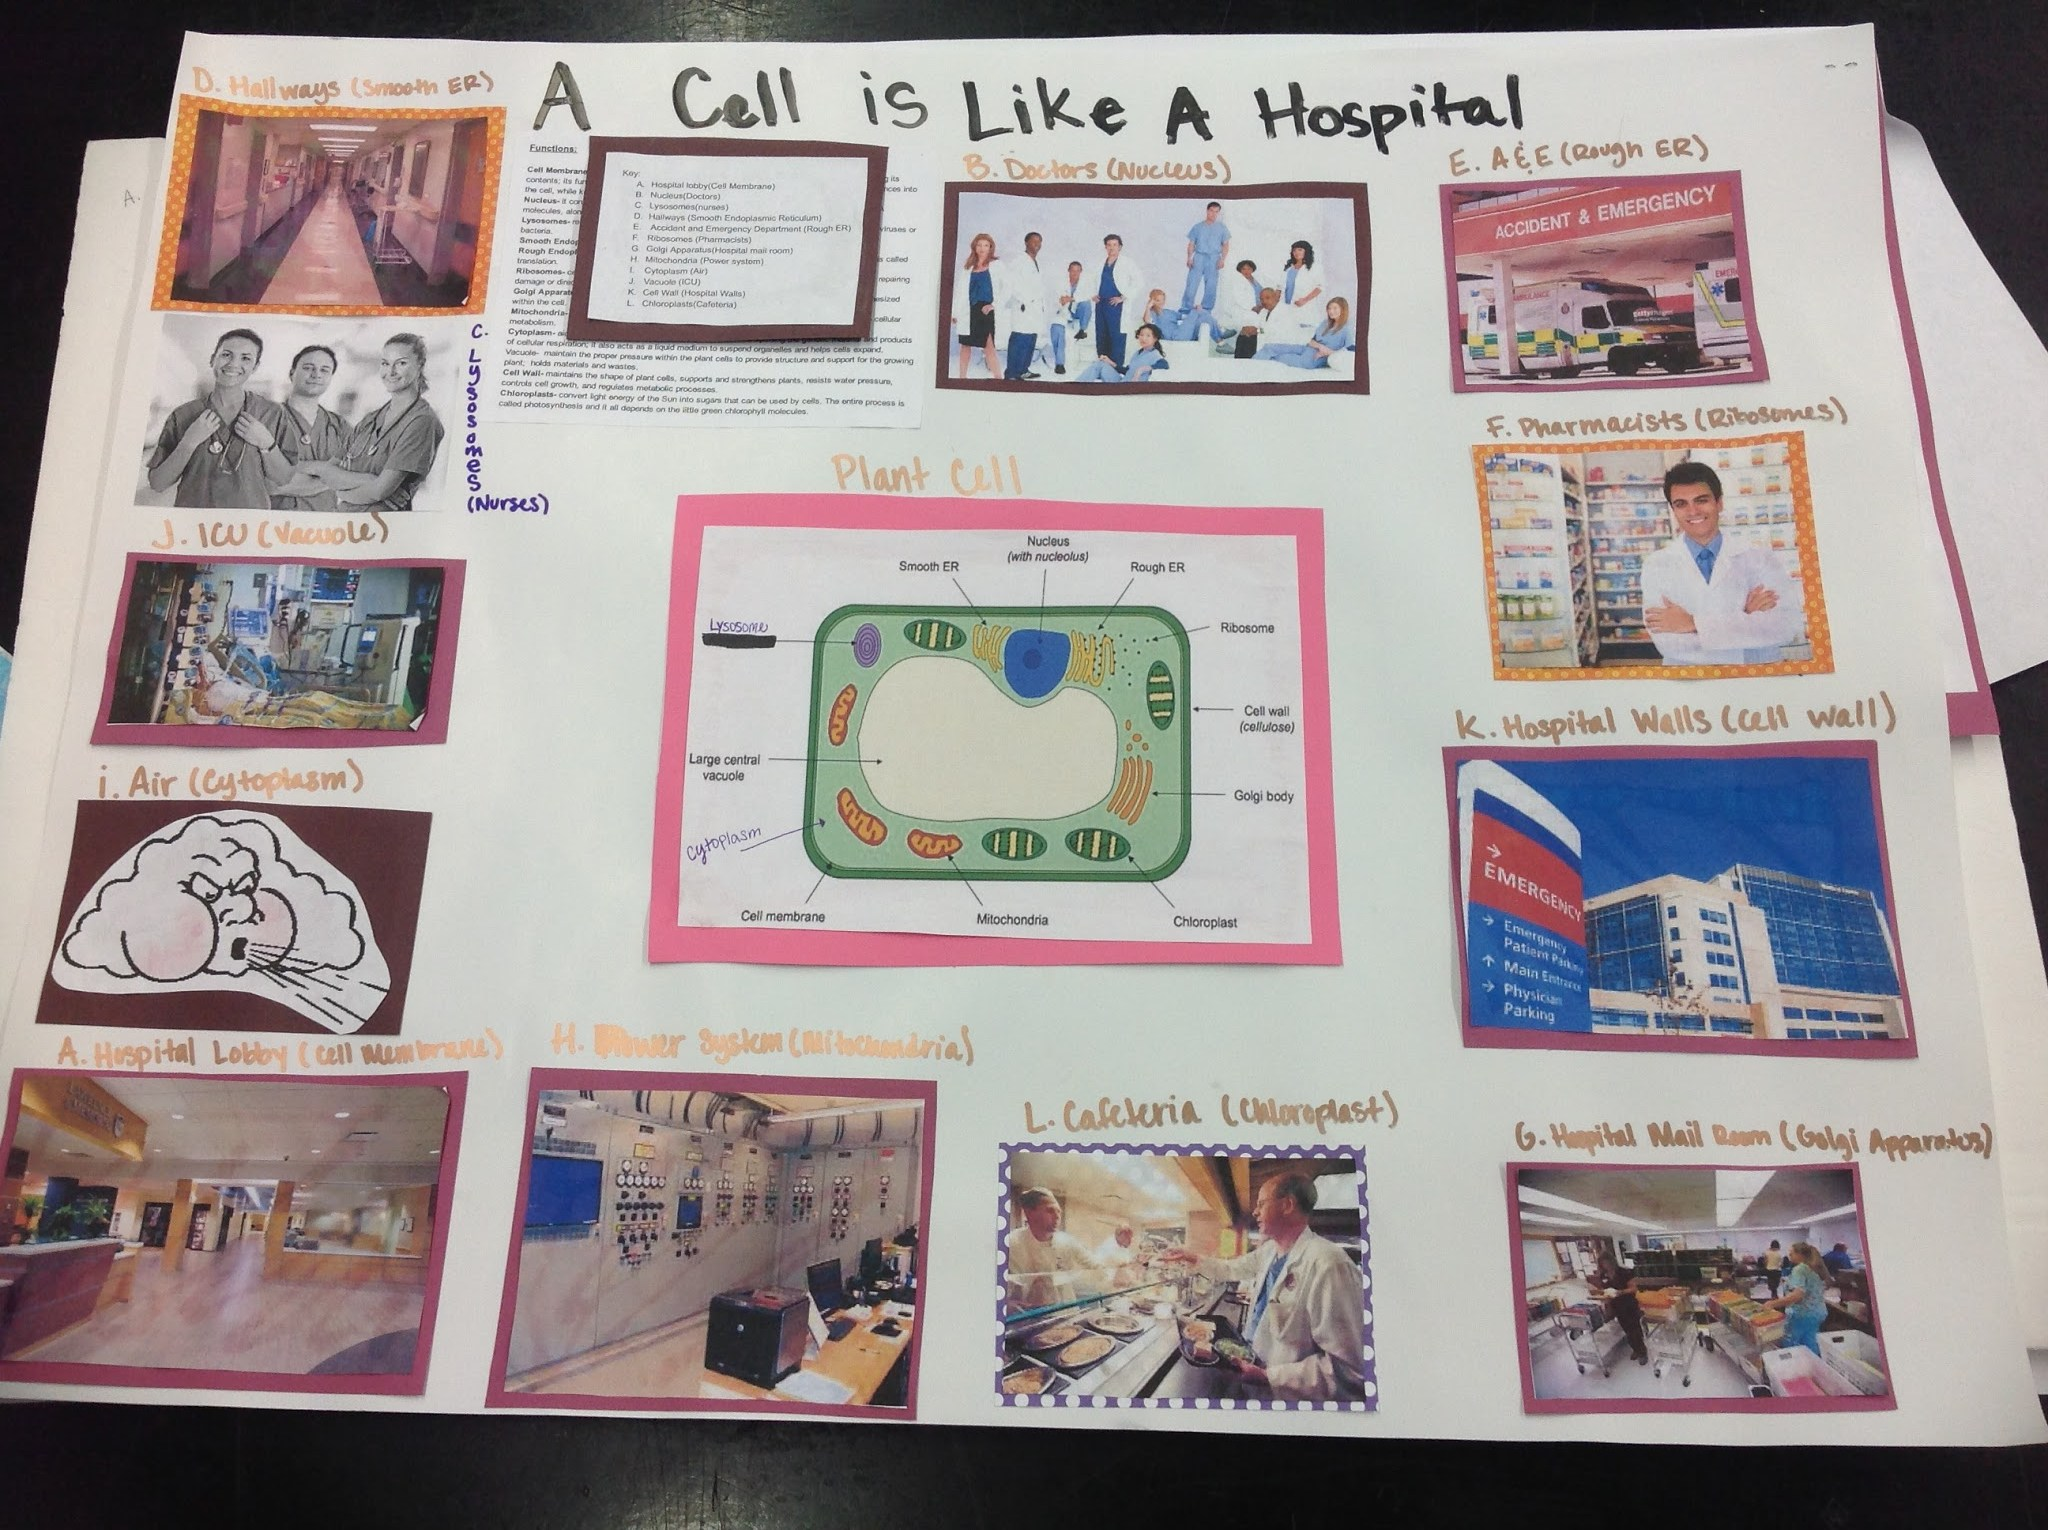 animal cell analogy